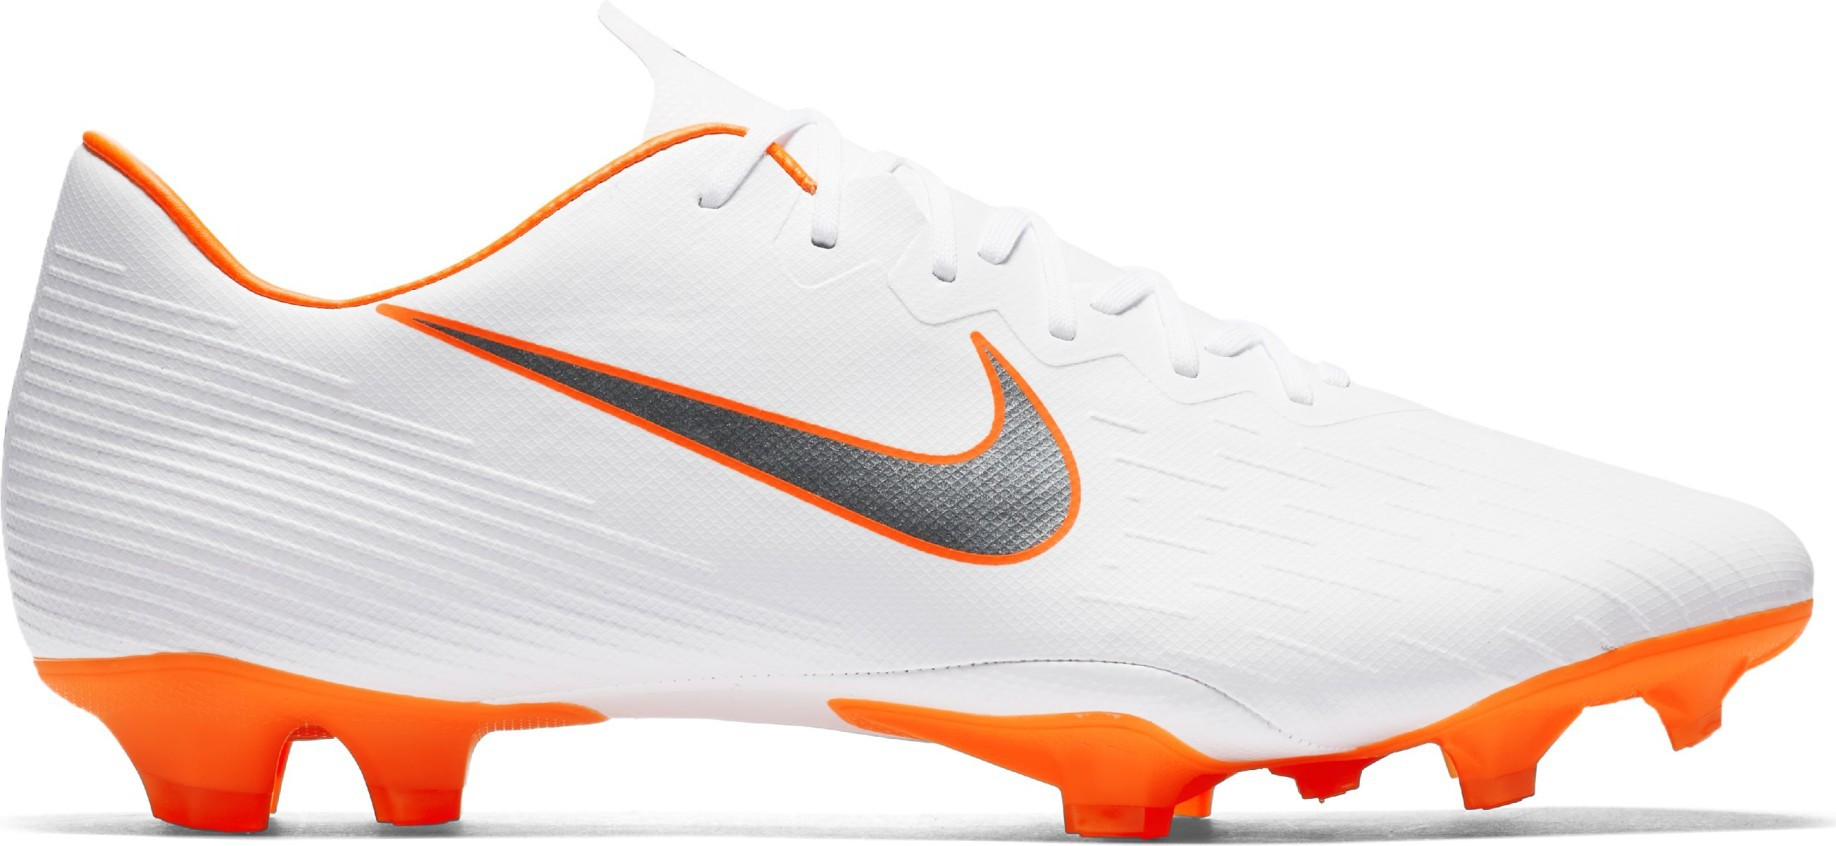 73b10a311 Football boots Nike Mercurial Vapor XII Pro FG Just Do It Pack colore White  Orange - Nike - SportIT.com